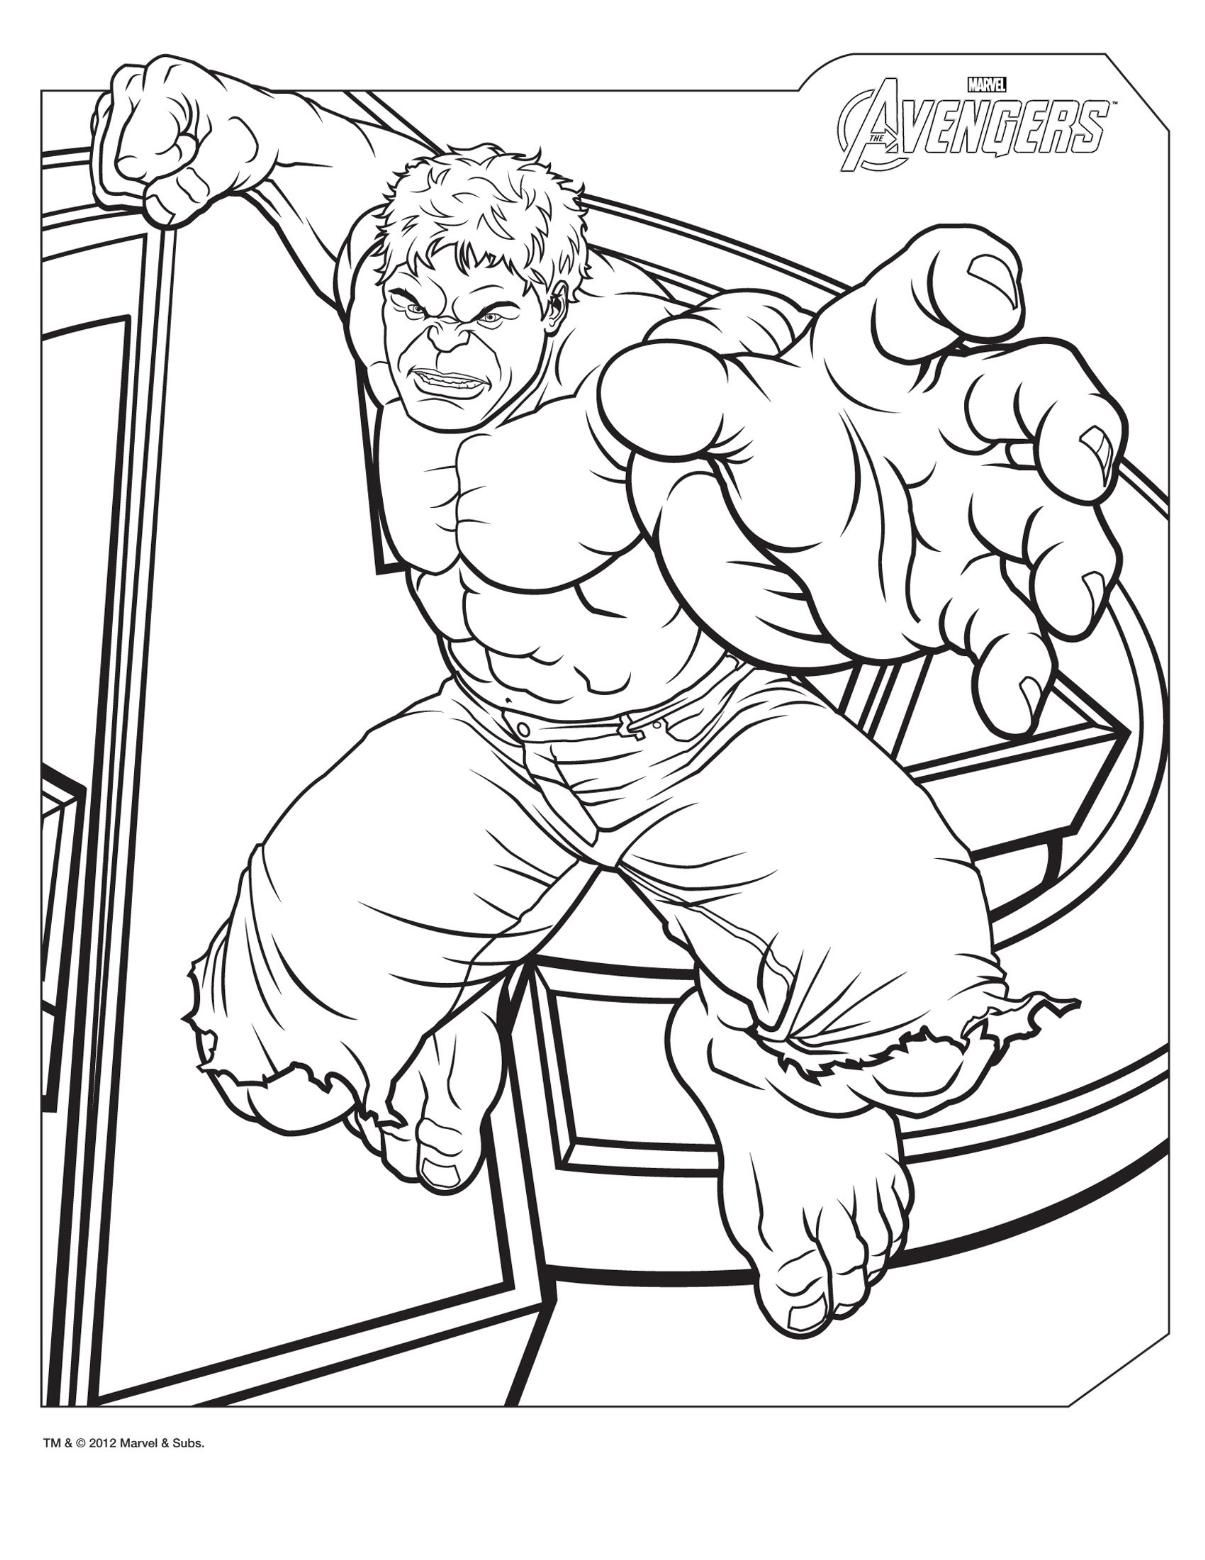 Free Printable Hulk Coloring Pages For Kids | Incredible hulk, Kids ...